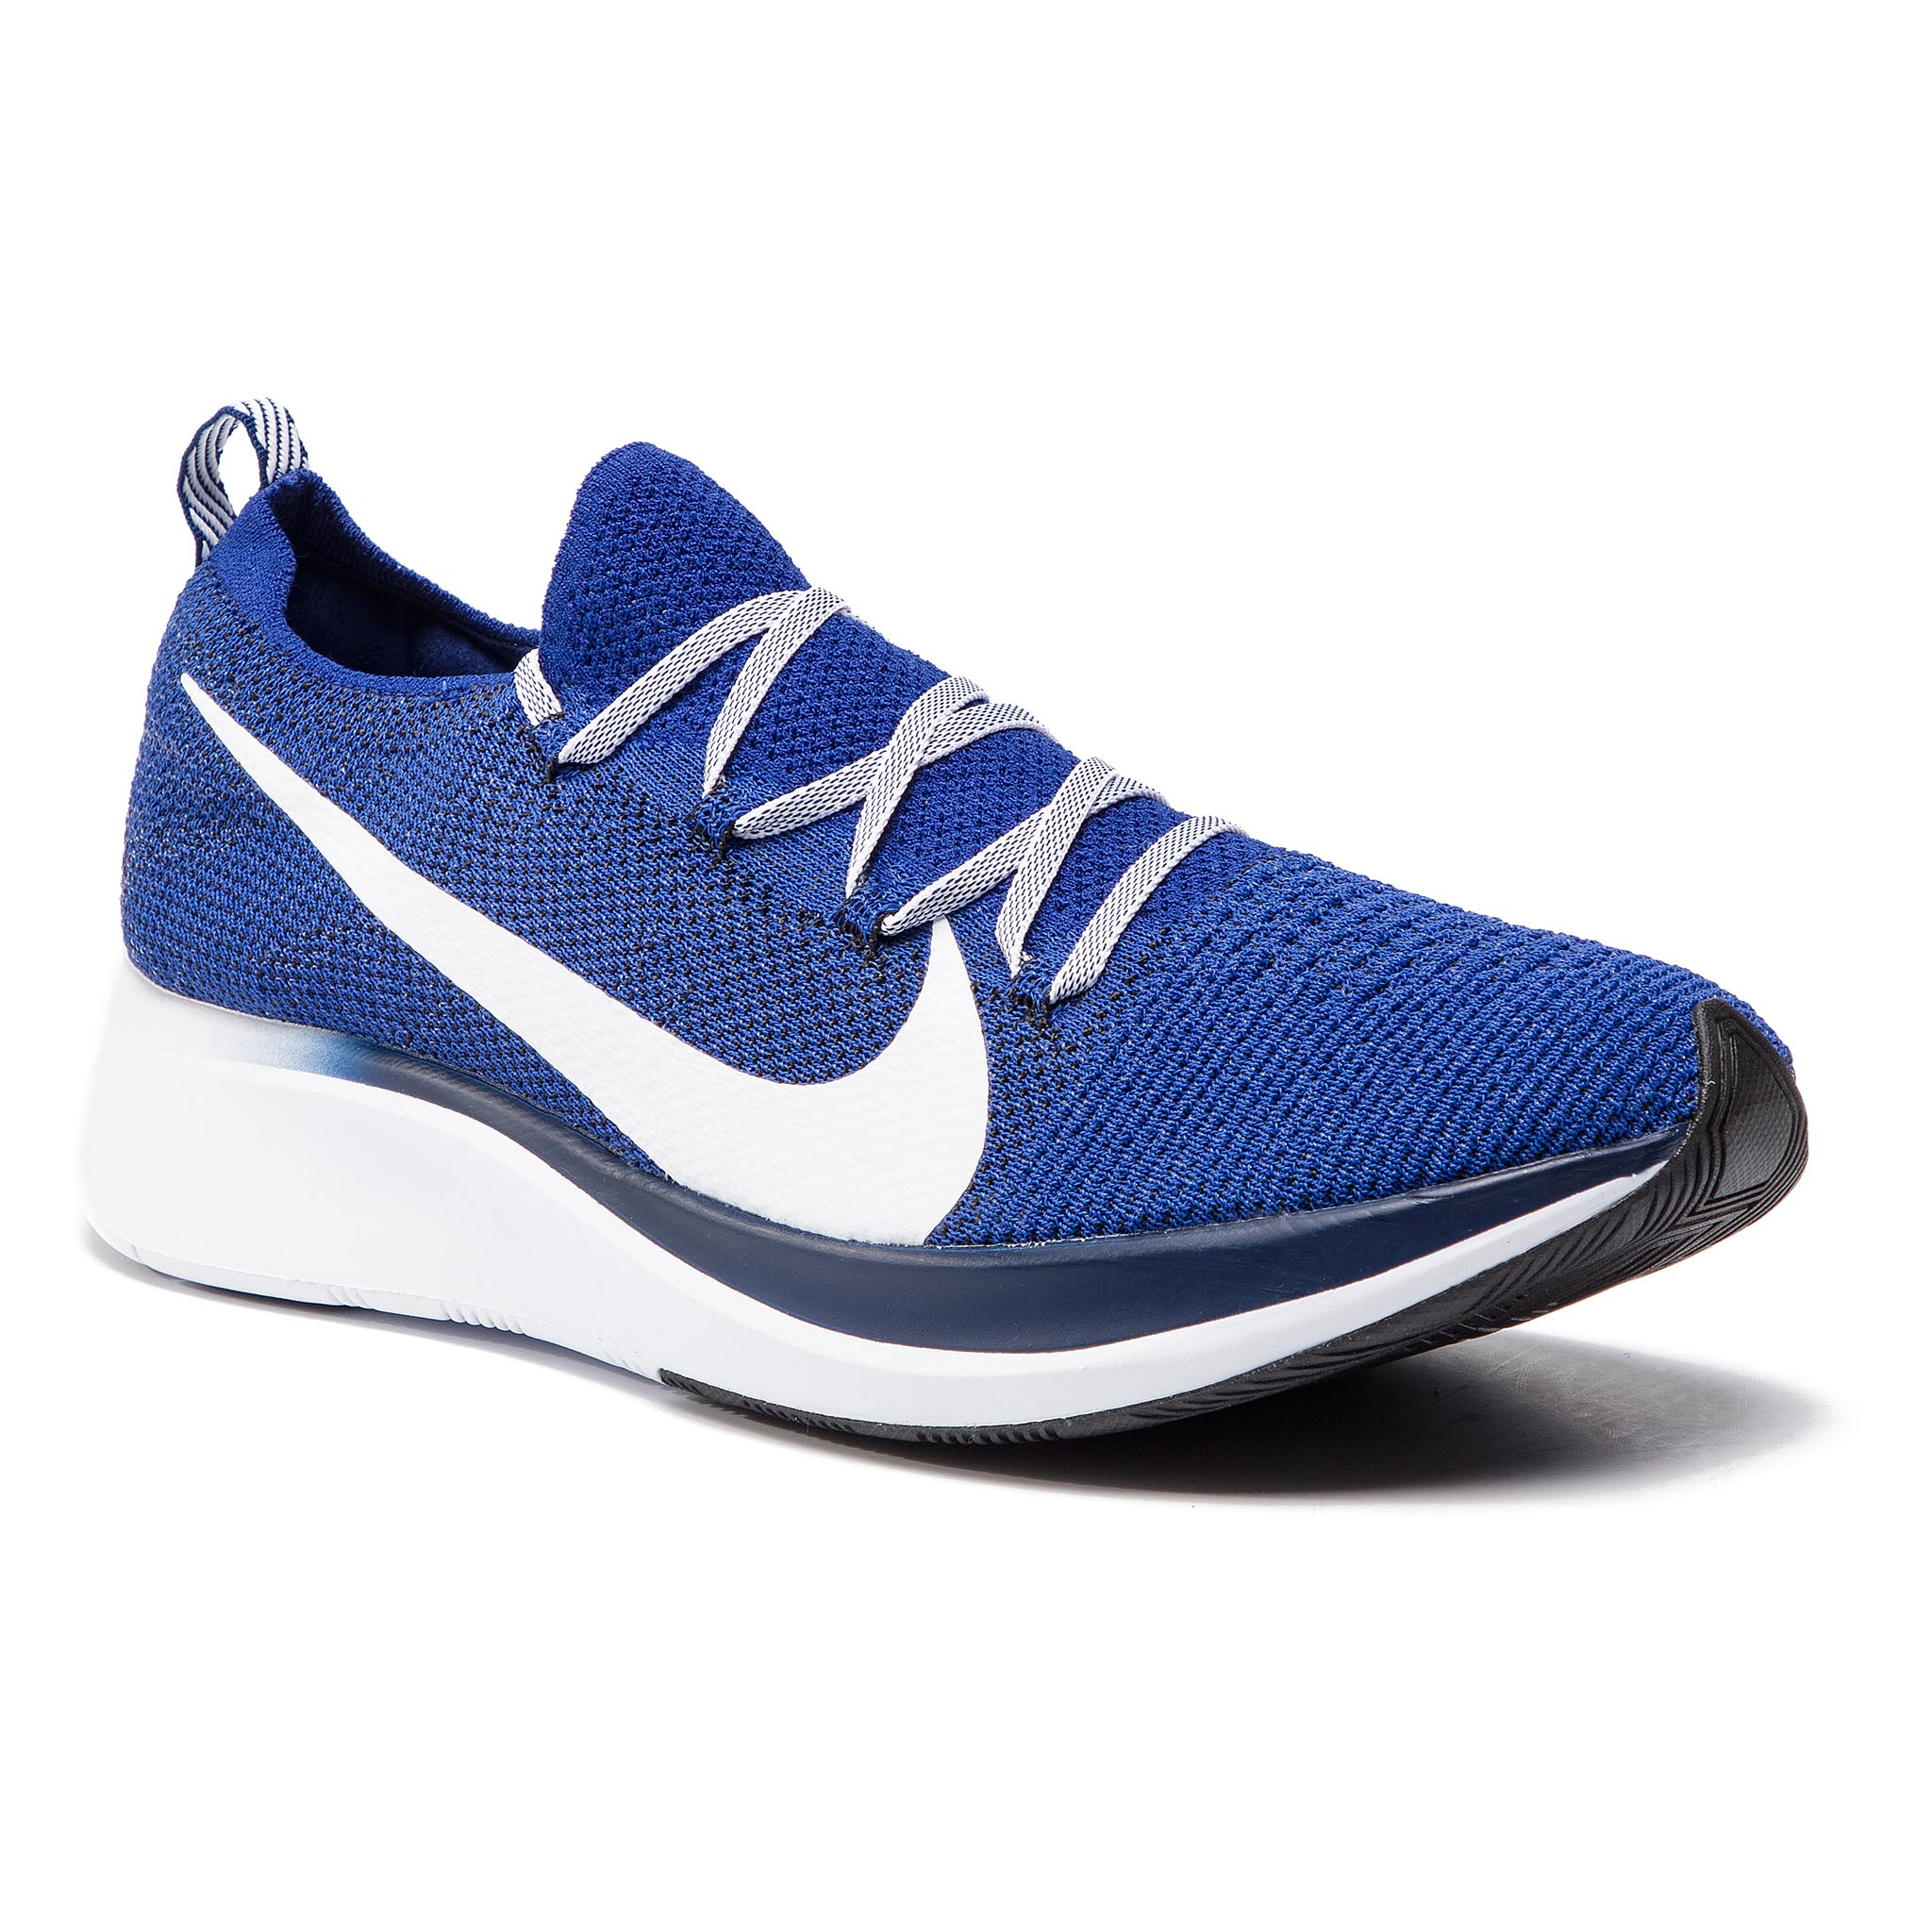 Pantofi NIKE - Zoom Fly Fk AR4561 400 Deep Royal/White/Blue Void